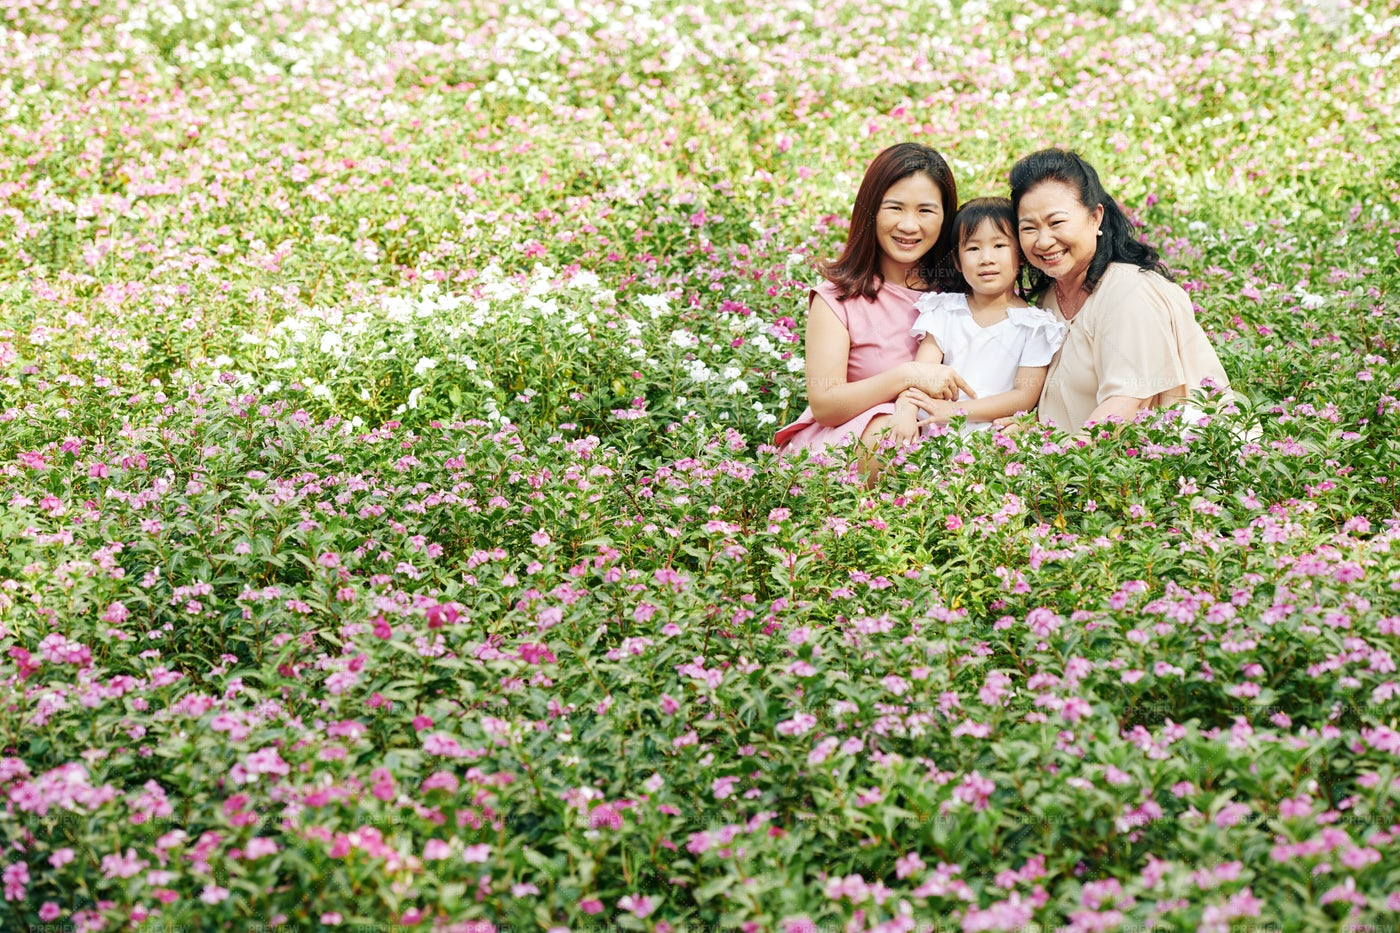 Family Sit In A Flowers Field: Stock Photos